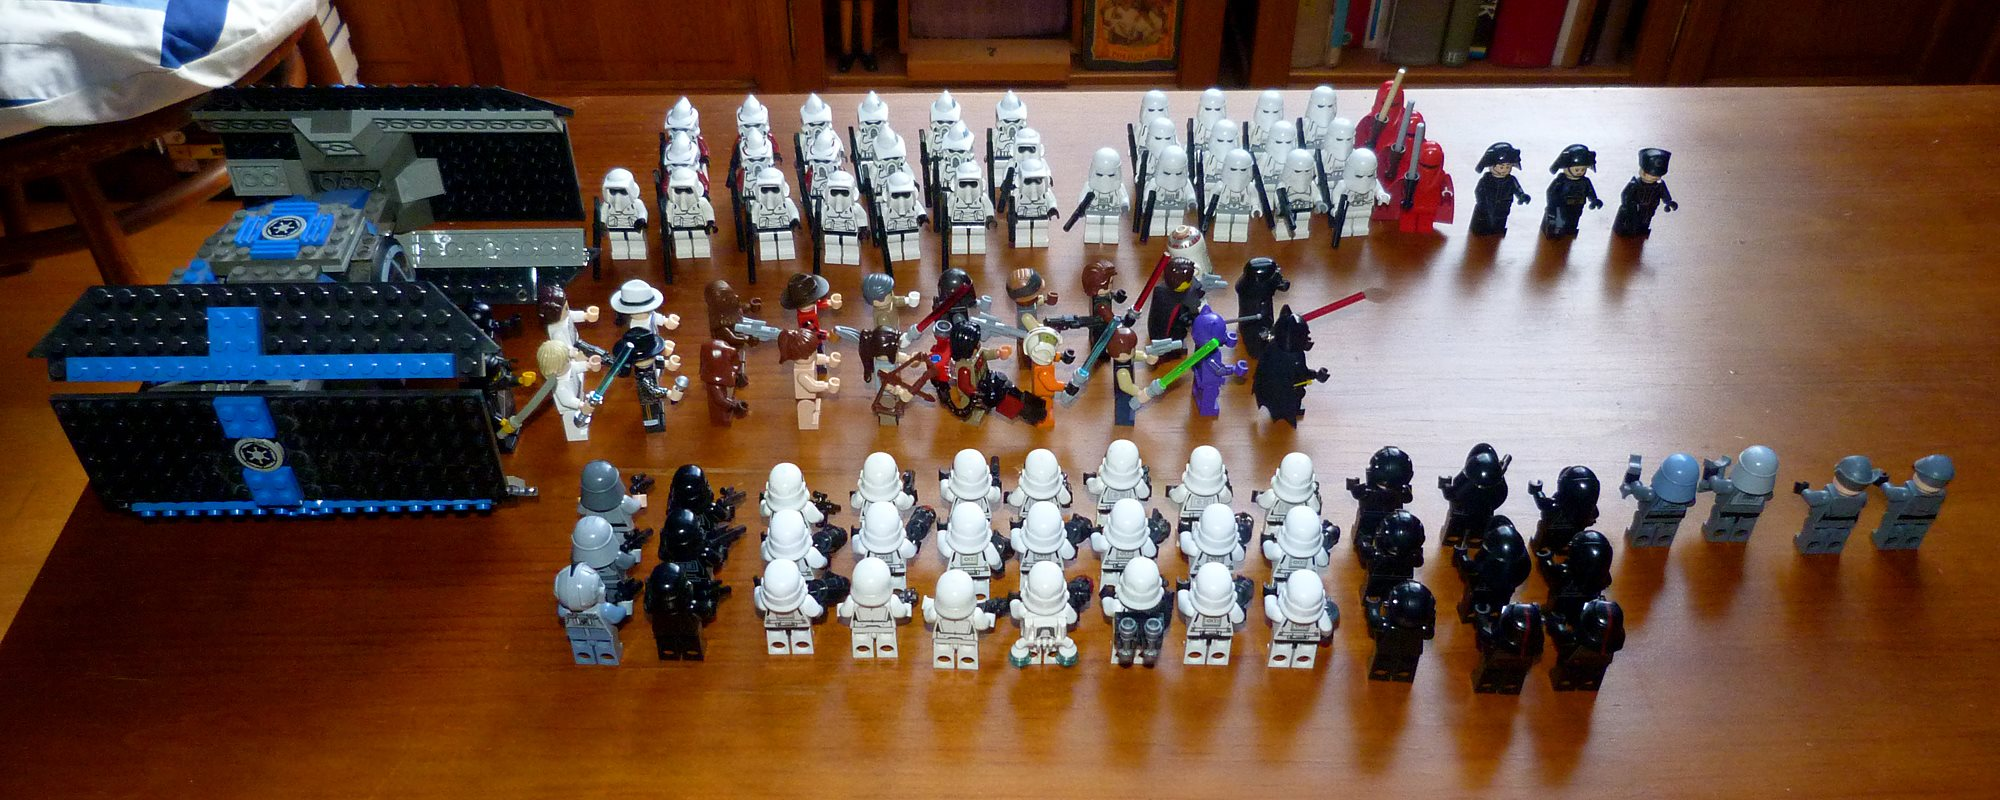 Star Wars collection figurines Lego